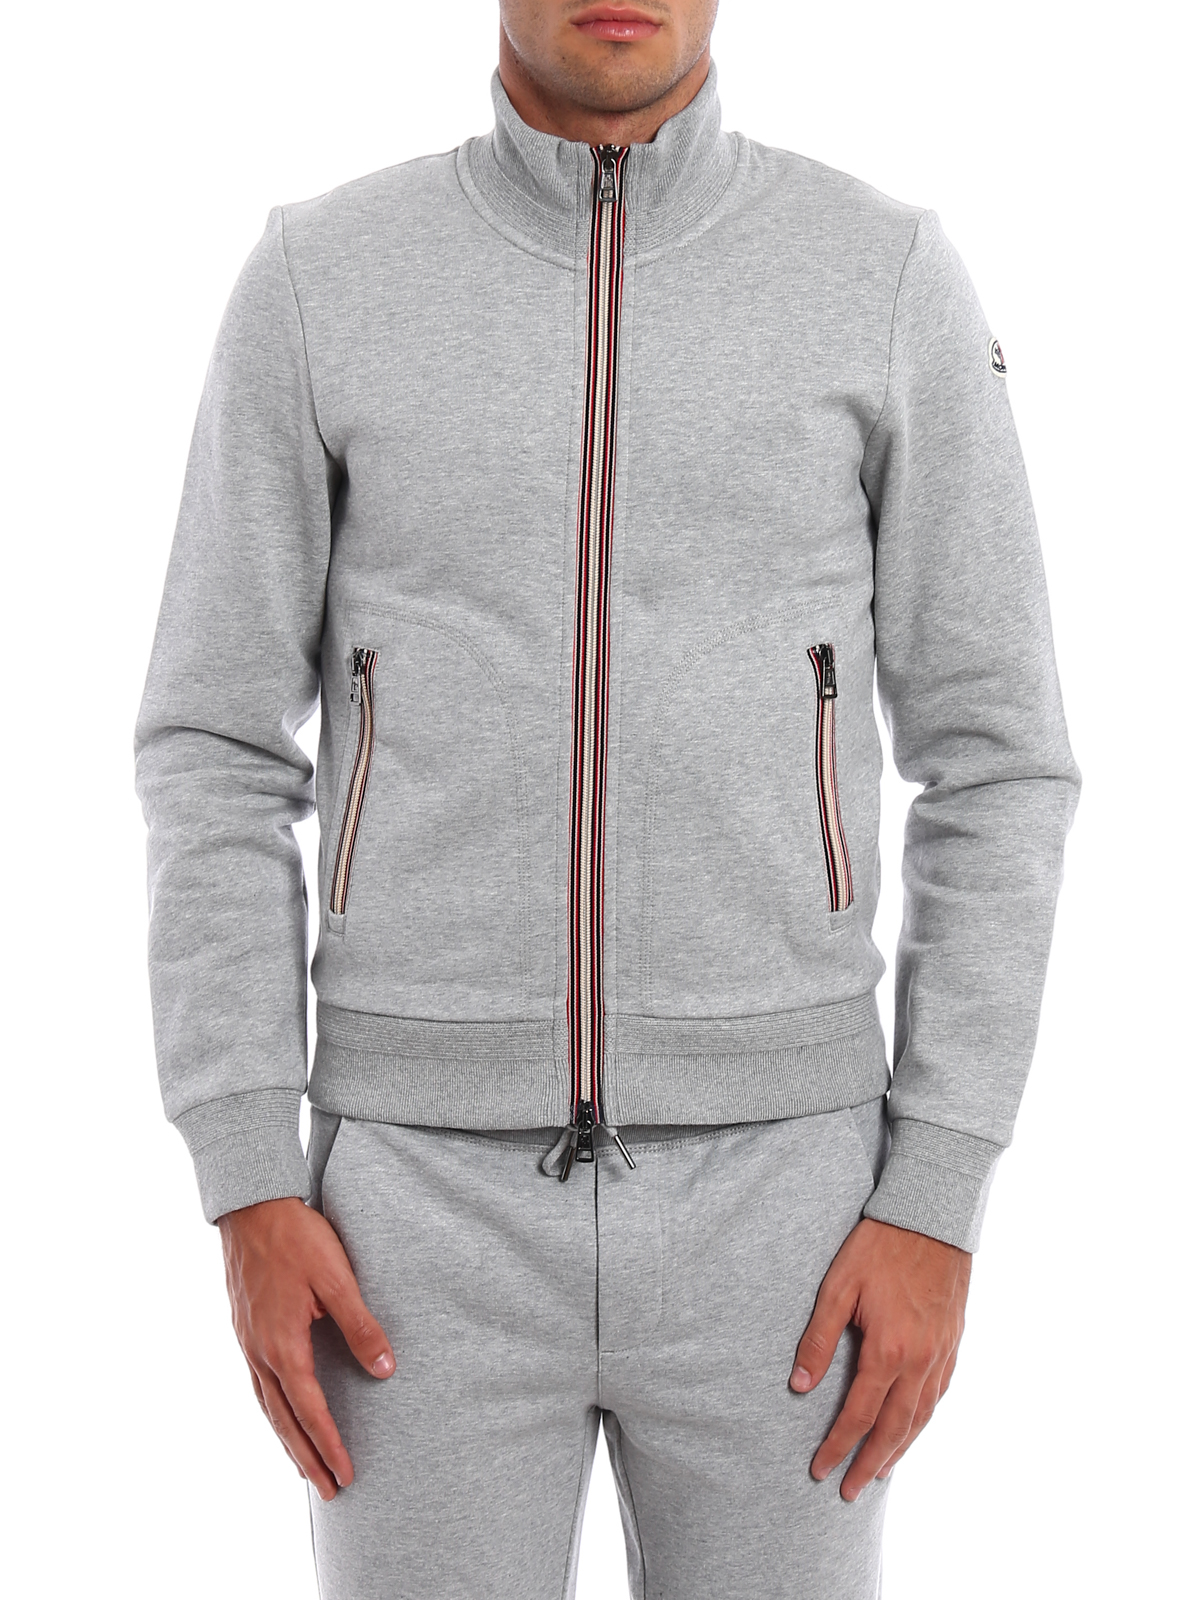 moncler zipper grey